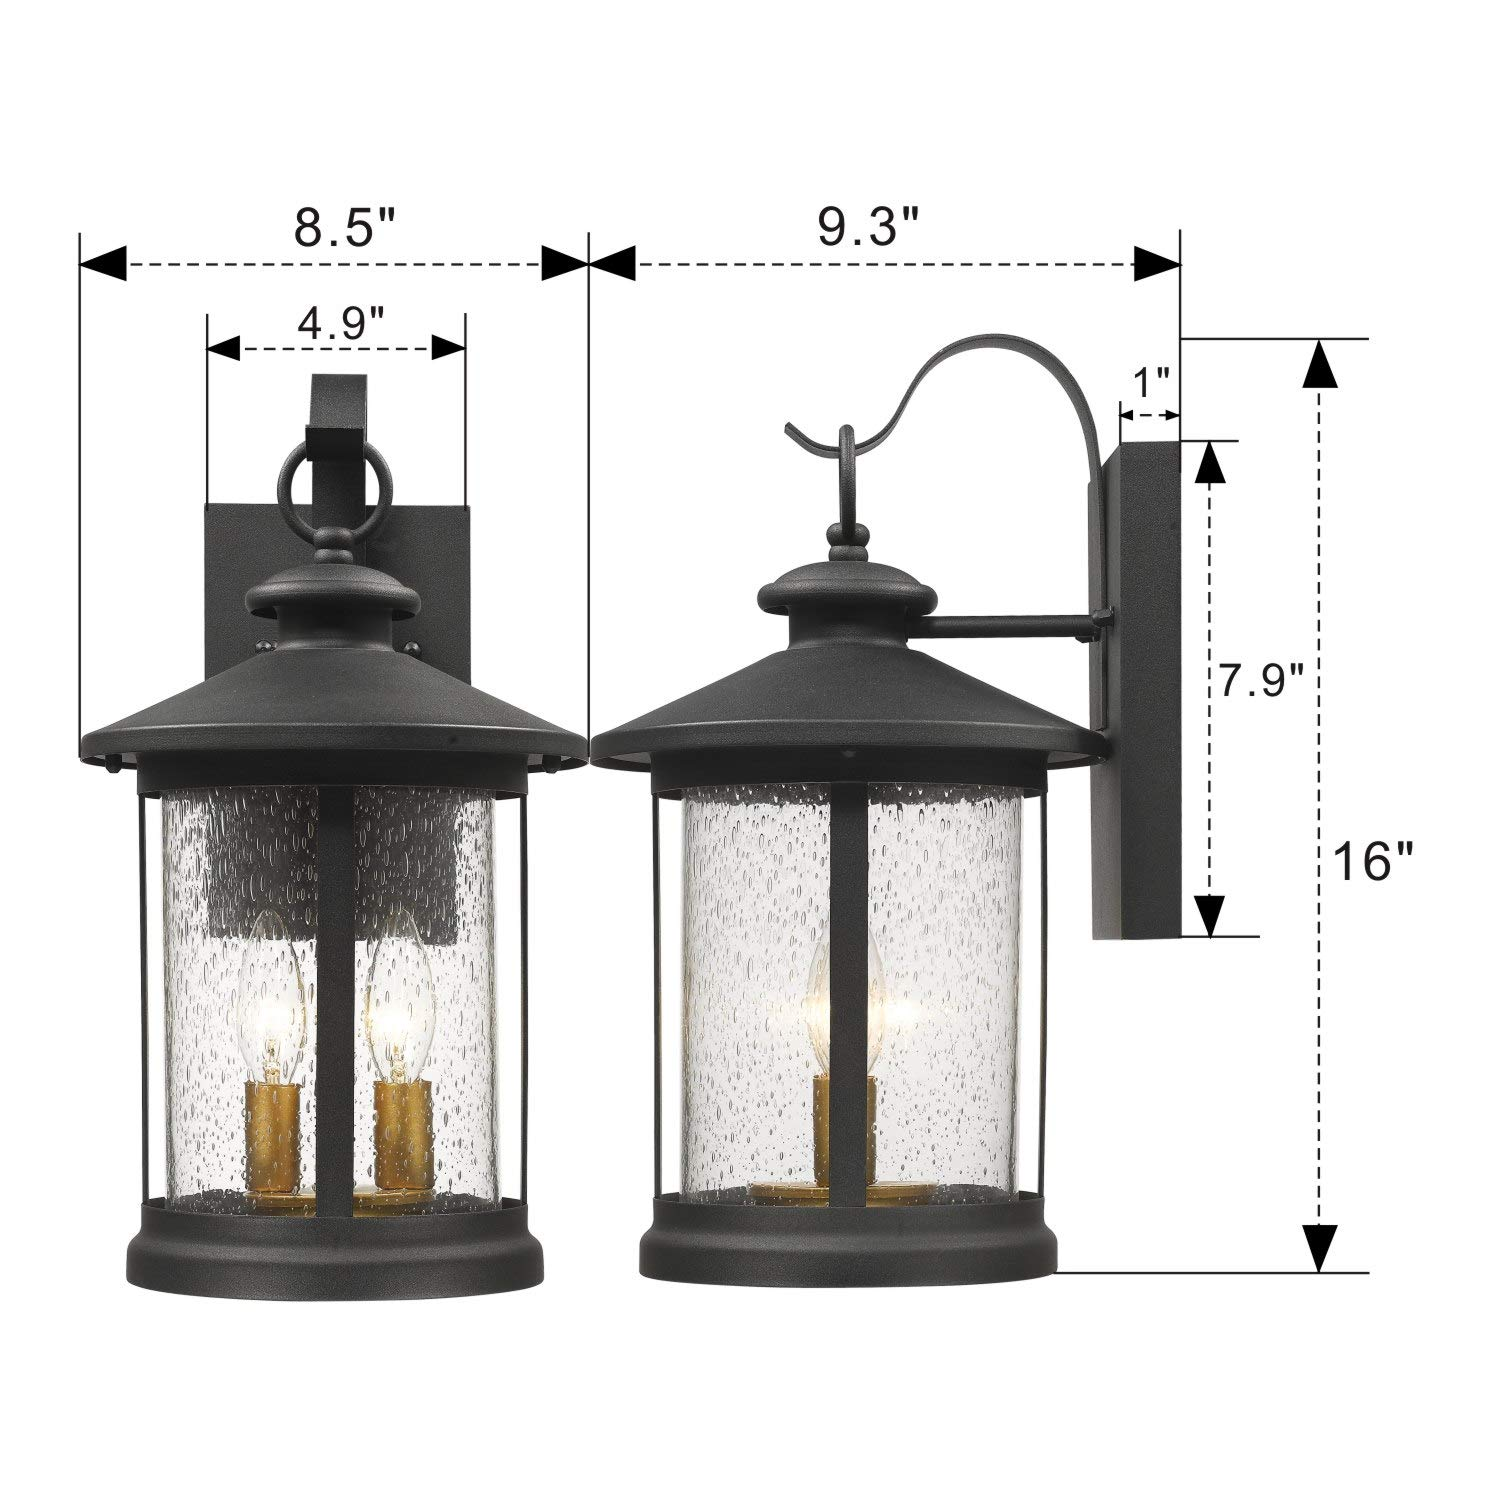 Black Finish with Seeded Glass Zeyu Exterior Pendant Light Lantern 20070H2 2-Light Outdoor Hanging Light Fixture for Porch